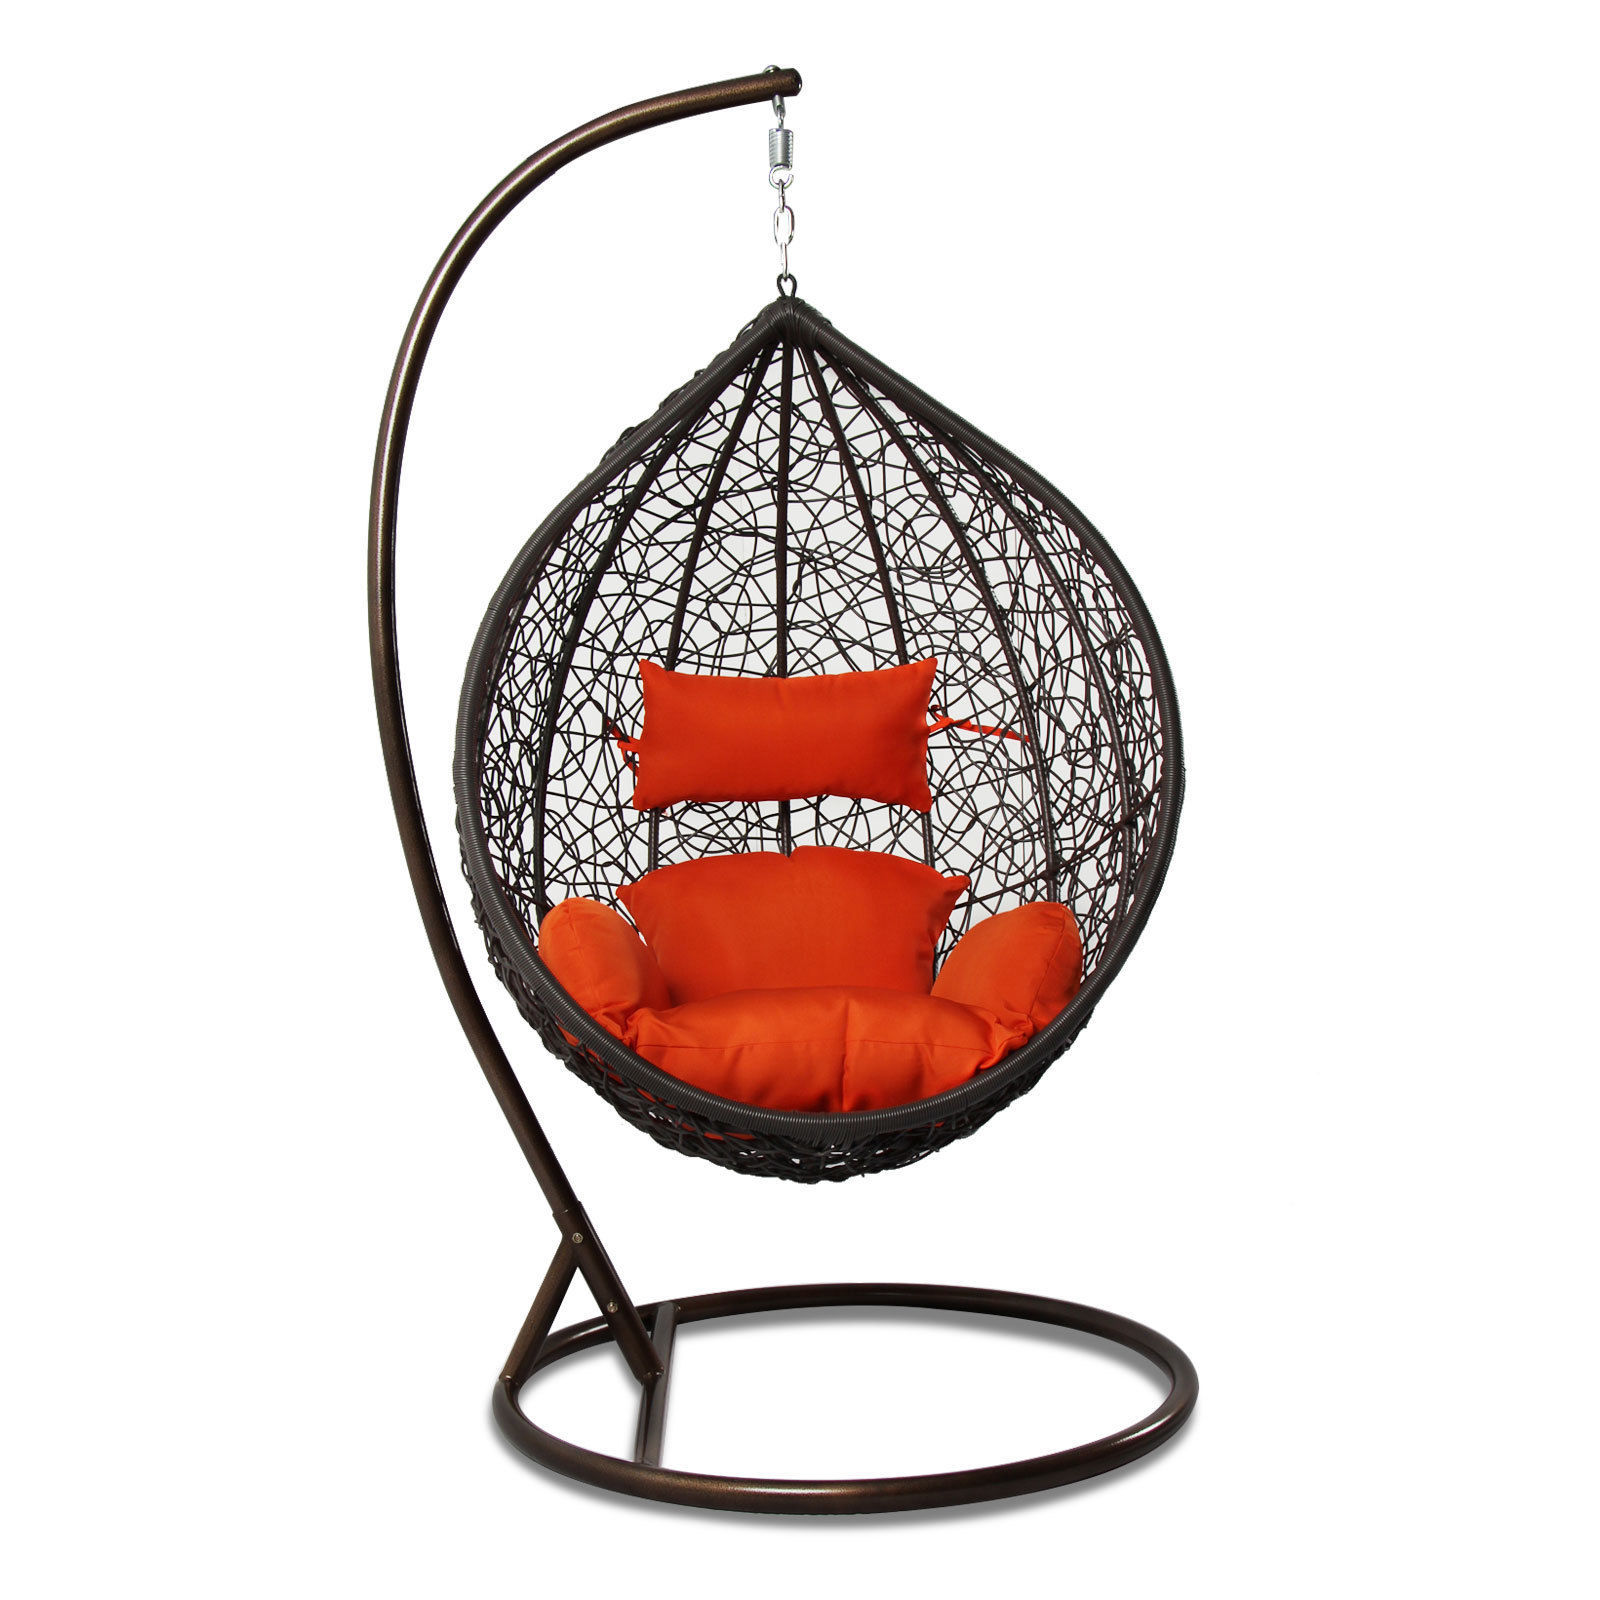 Egg Shaped Wicker Chair Rattan Outdoor Wicker Hanging Chair Egg Shape Stand Porch